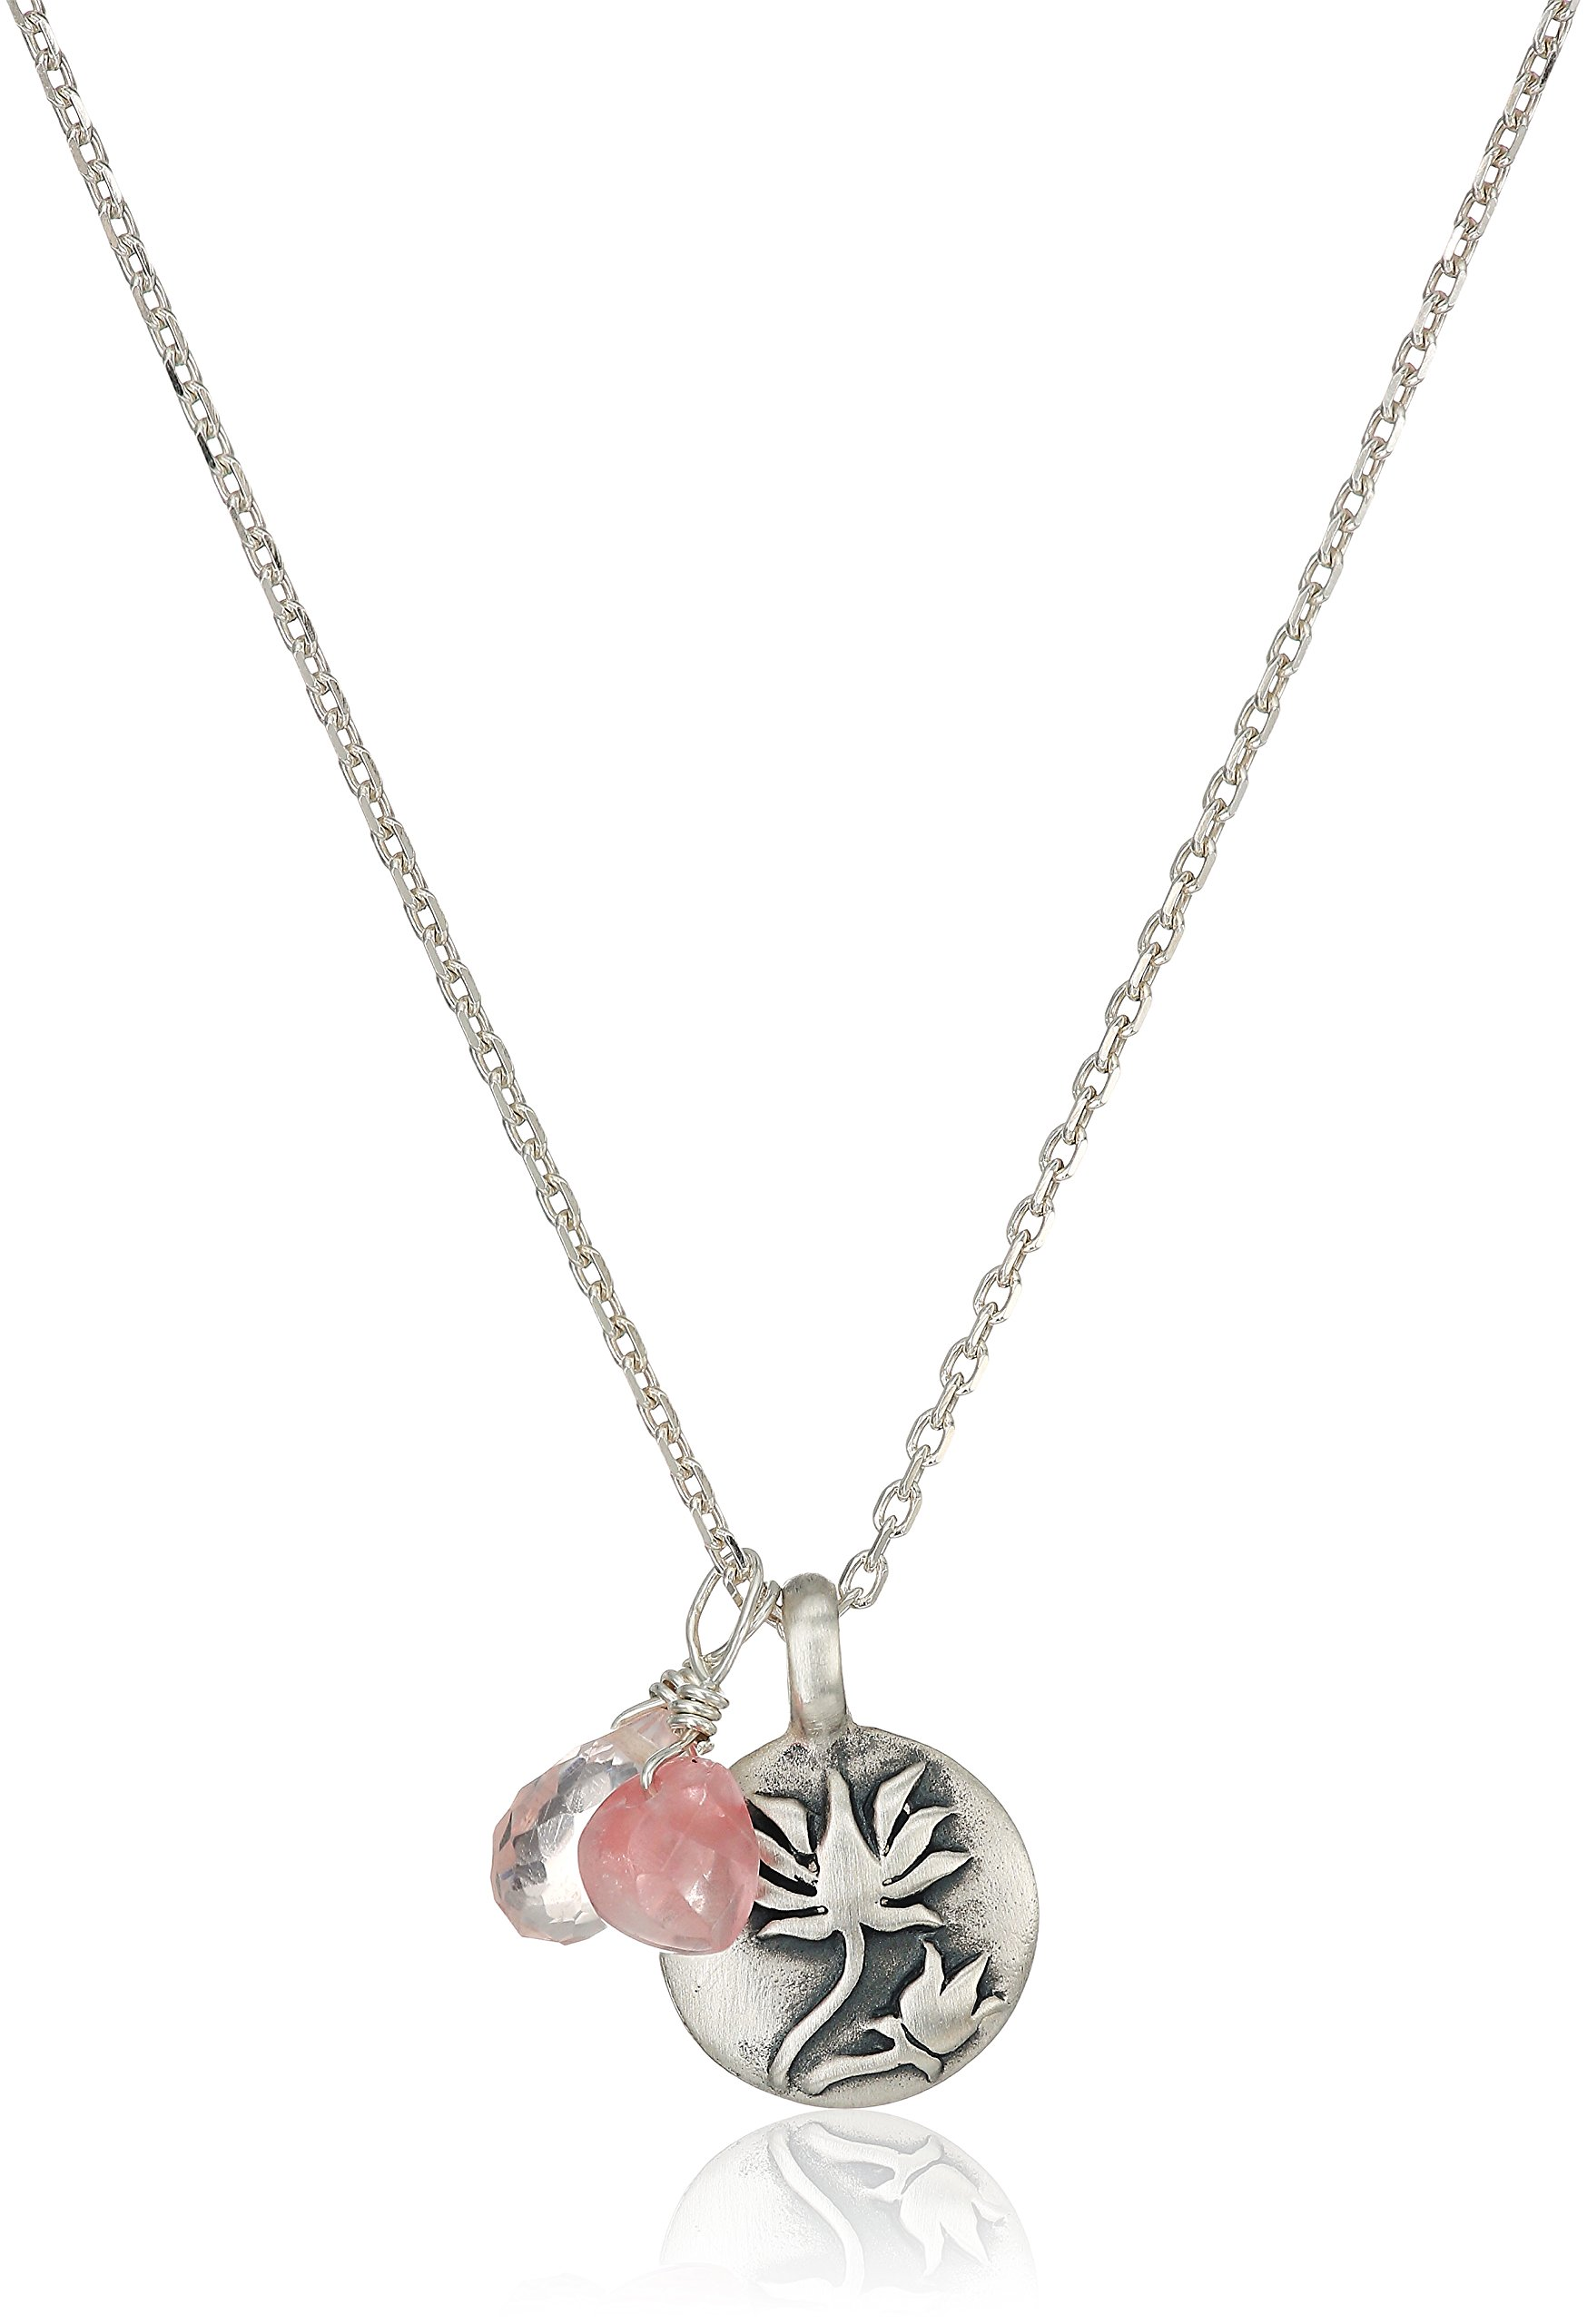 Satya Jewelry Sterling Silver Rose Quartz Lotus Charm Necklace (18-Inch), 18'' by Satya Jewelry (Image #2)